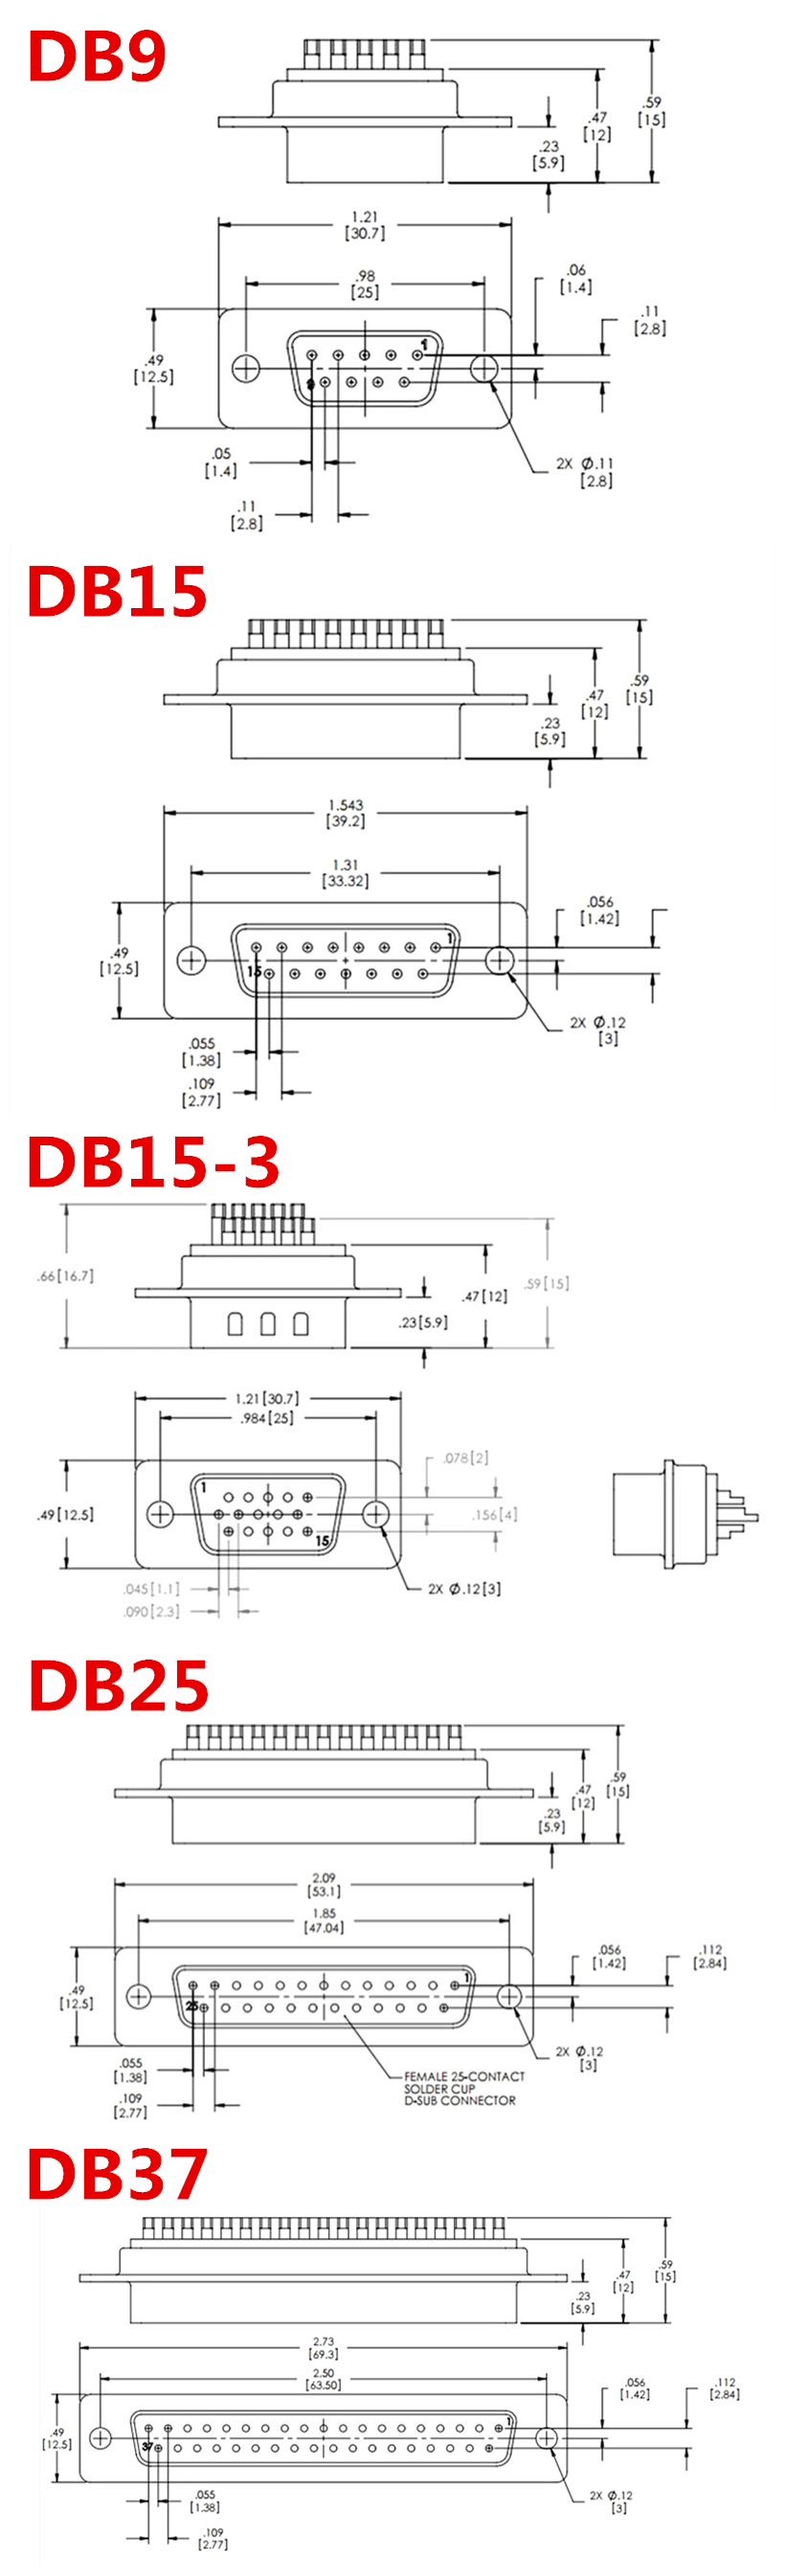 Db37 Cable Wiring Diagram 5pcs Db9 Db15 Db25 Hole Pin Female Male Blue Welded Connector Htb1kx9oqfxxxxxixfxxq6xxfxxxb